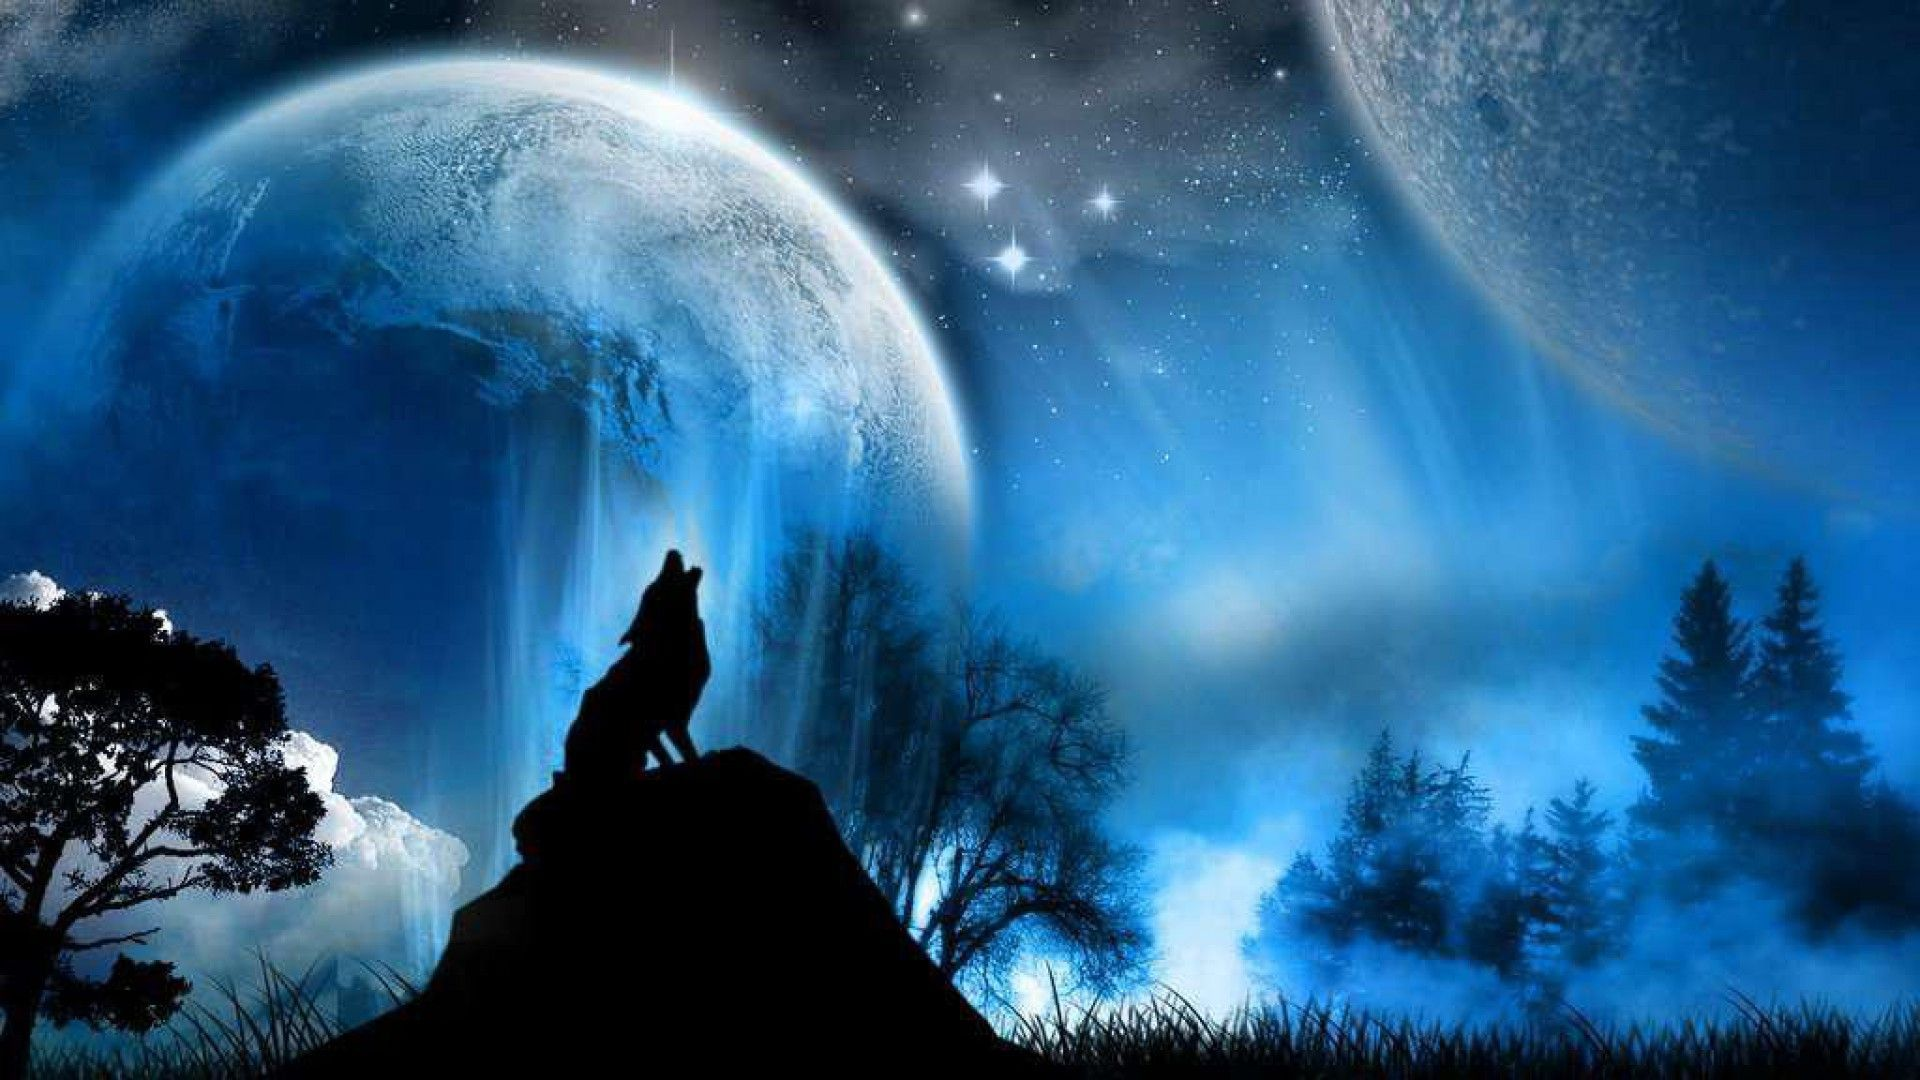 Wolfs Images